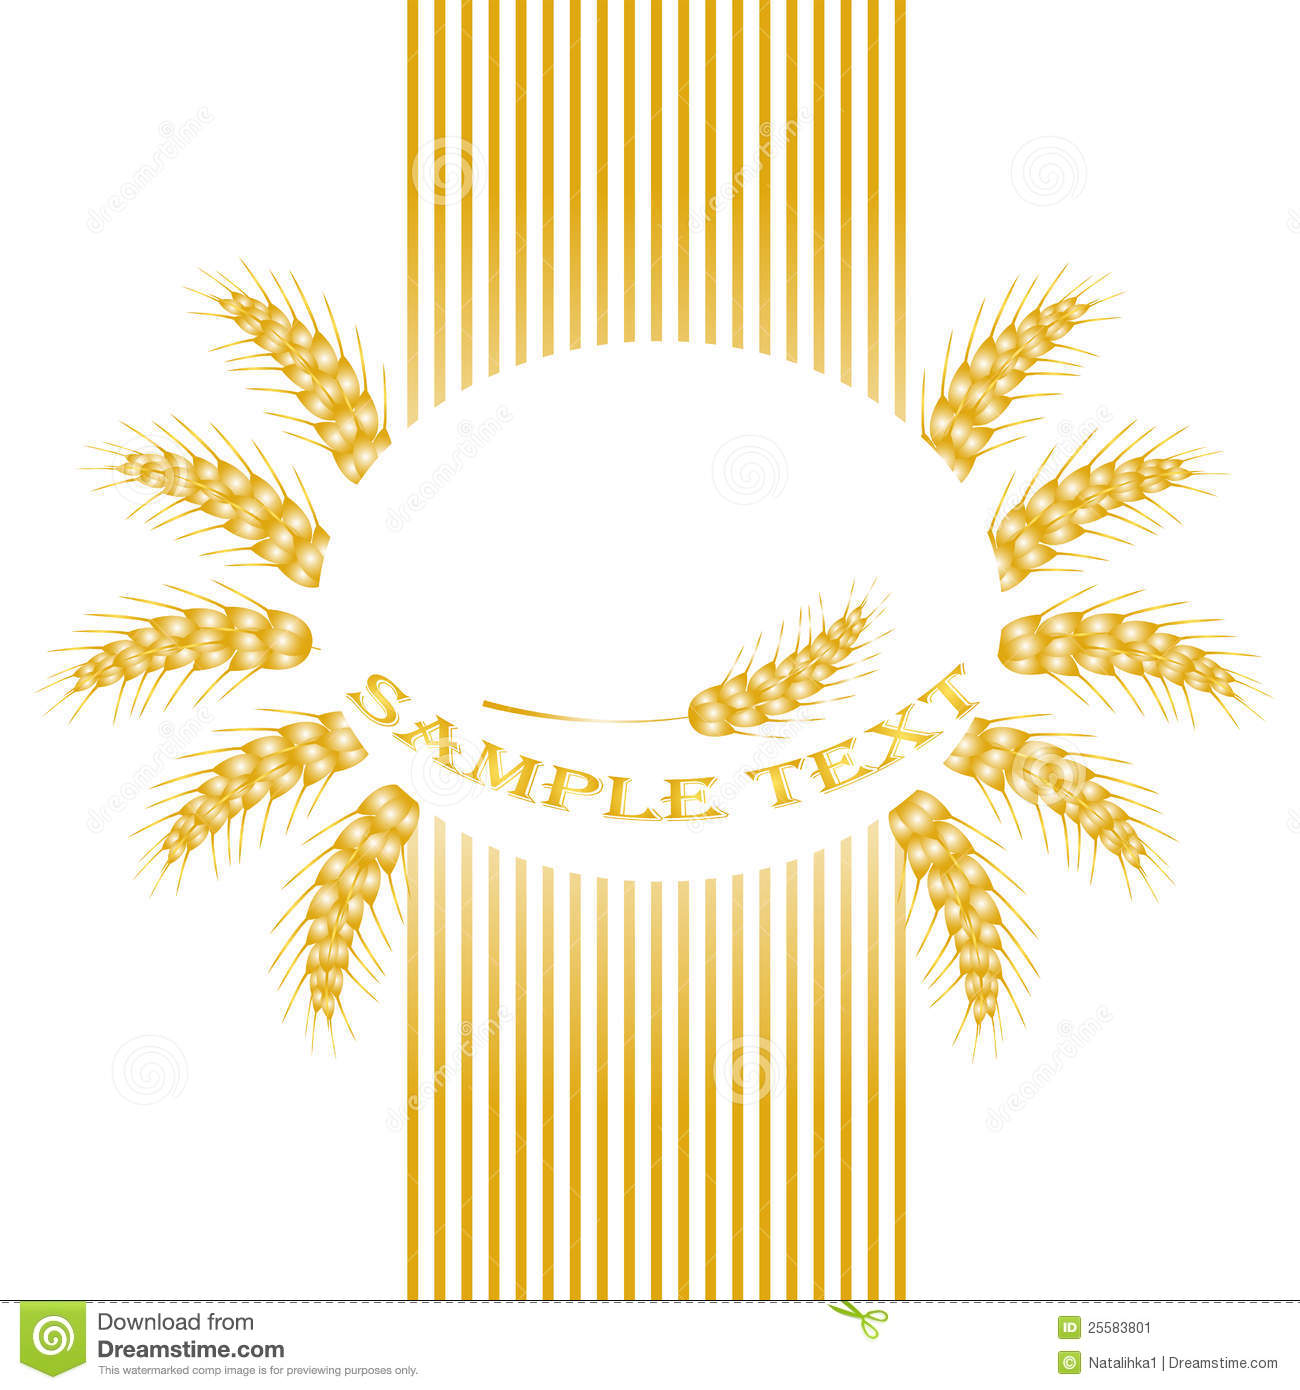 More similar stock images of ` Package desing. Wheat flour `